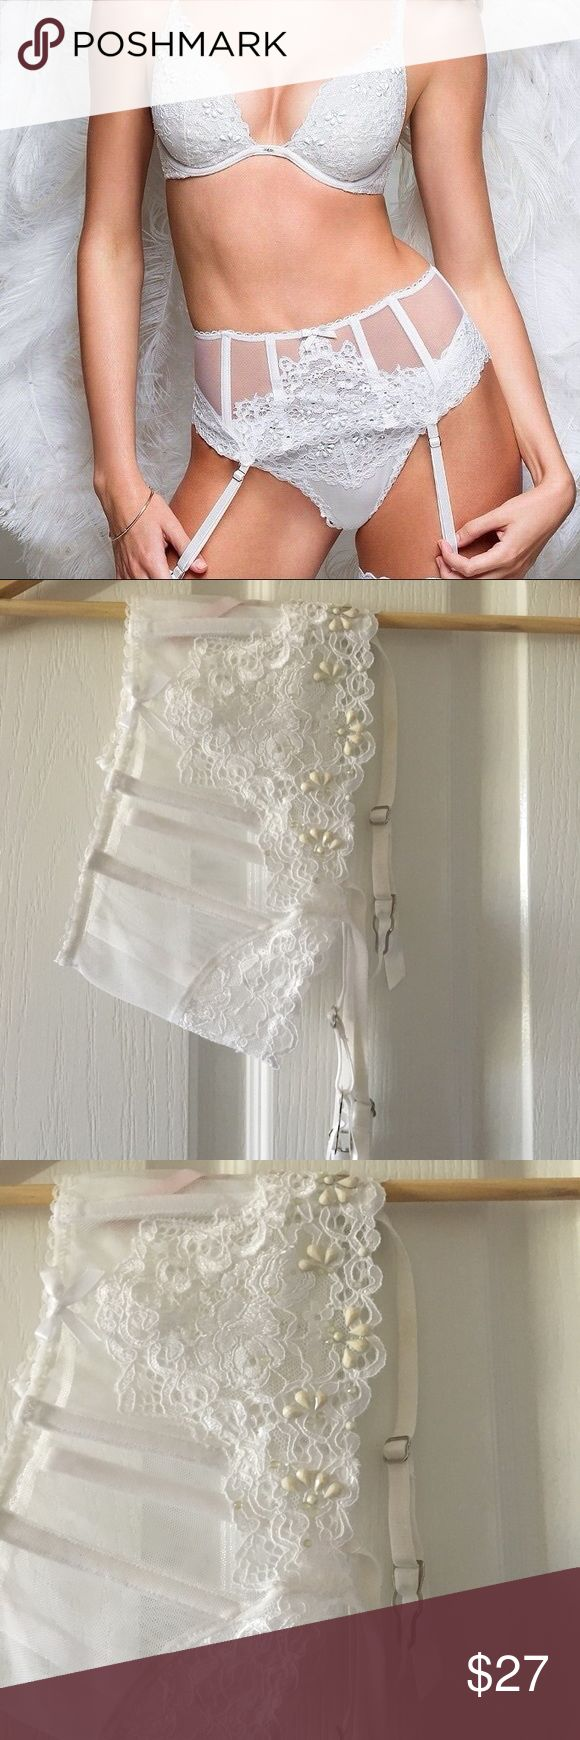 Victoria's Secret White Garter Belt Brand New ! Fun & Sexy for anytime of year. Size fits both xs and small 💞 Bundle and Save Victoria's Secret Intimates & Sleepwear Chemises & Slips